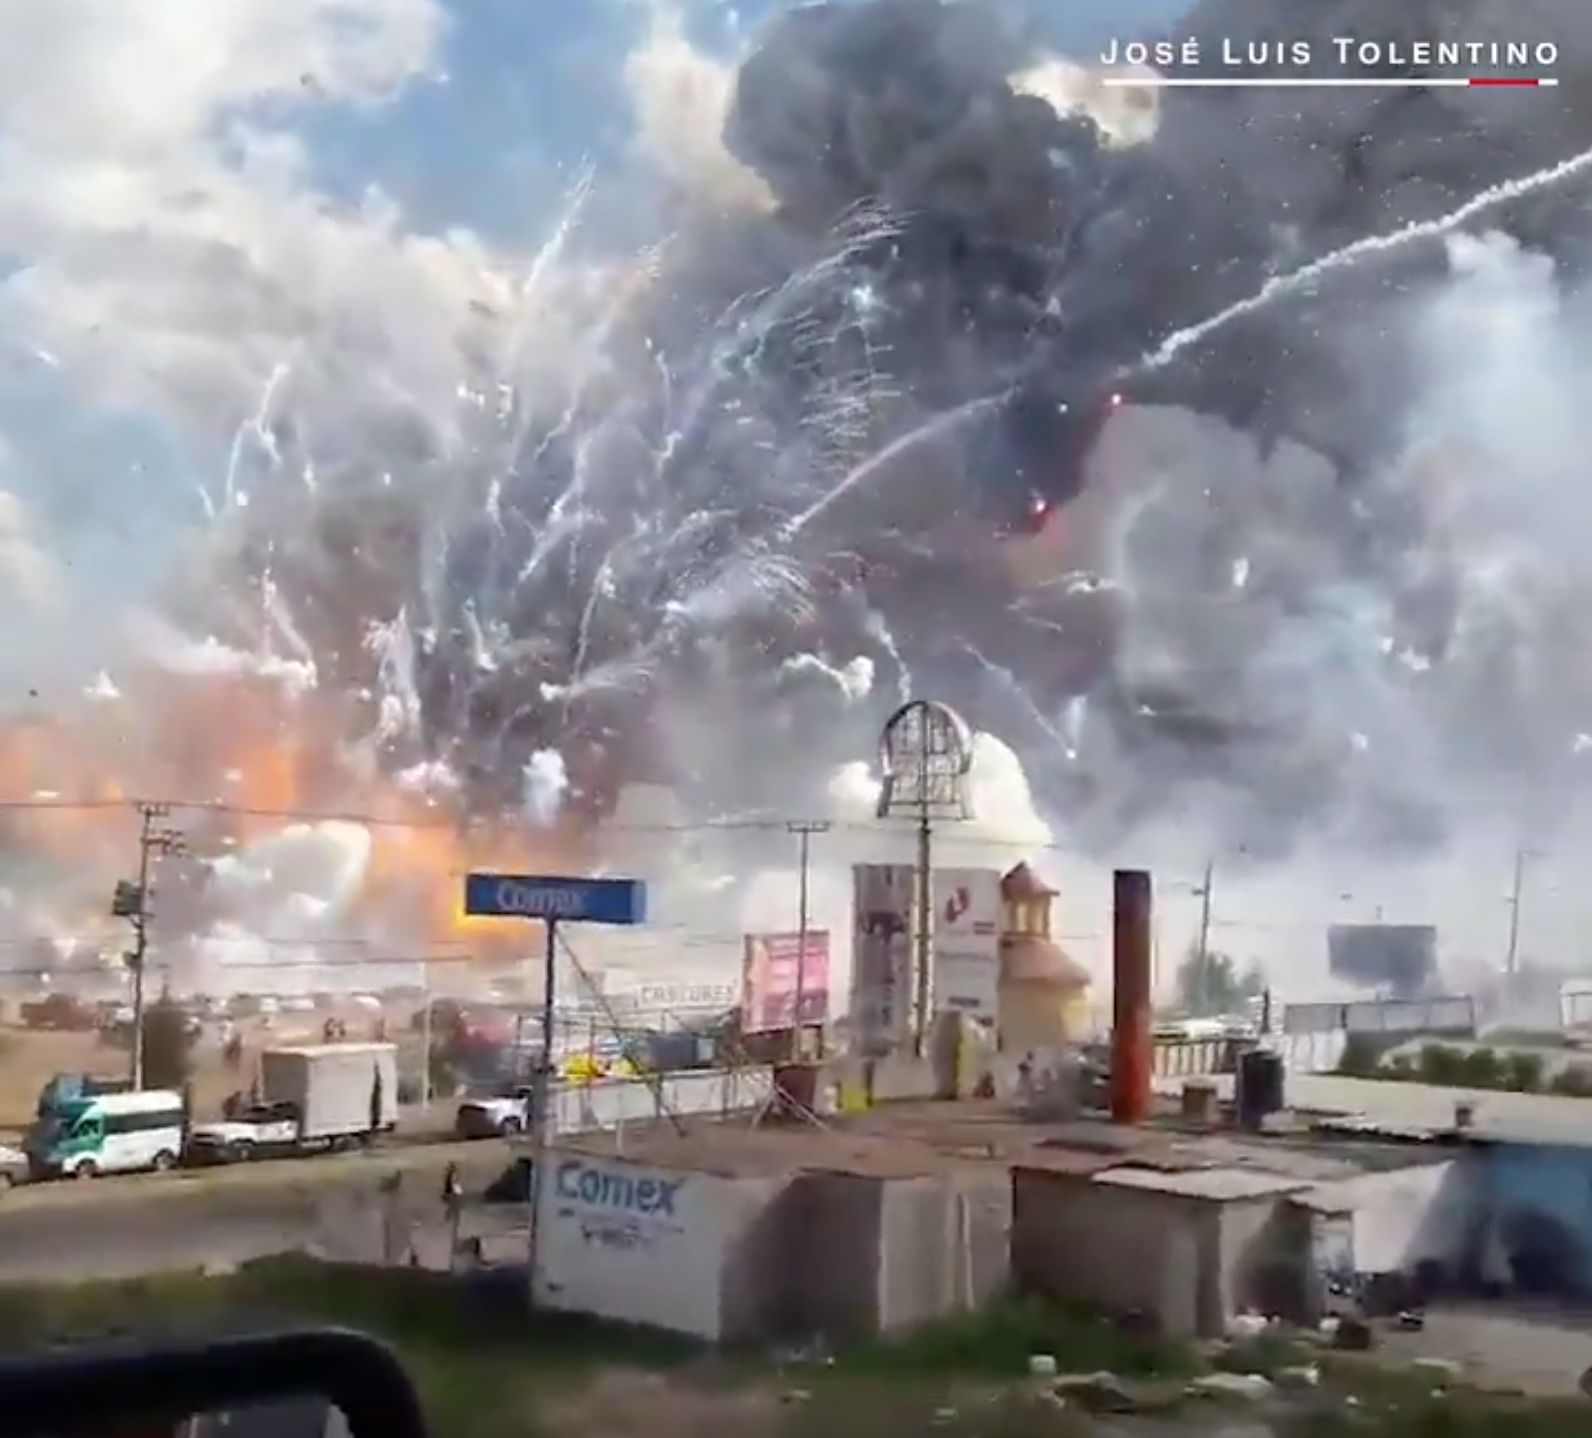 Terrifying Footage Shows Fireworks Market Explosion That Killed At Least